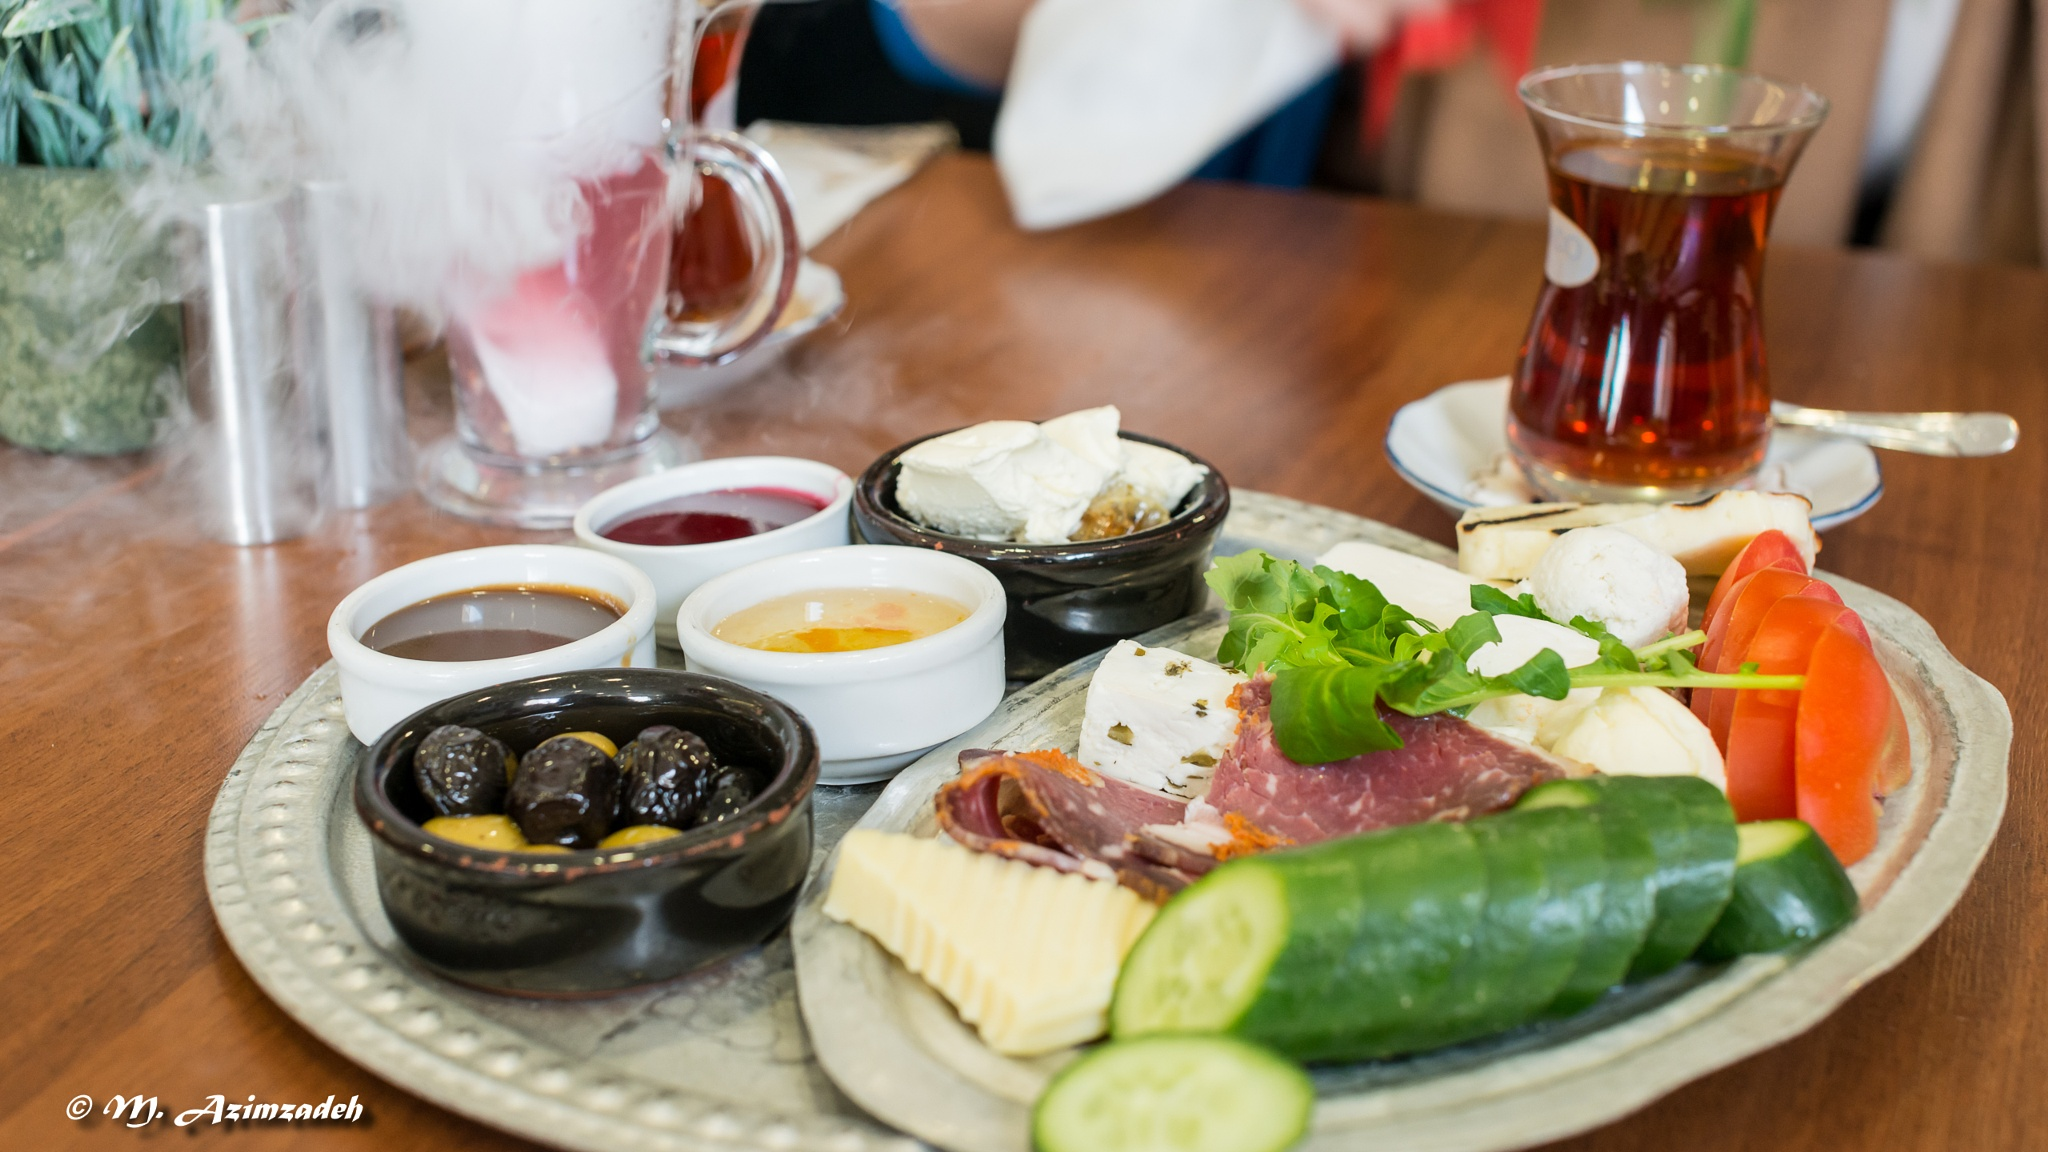 Turkish Breakfast by Mohammed Azimzadeh